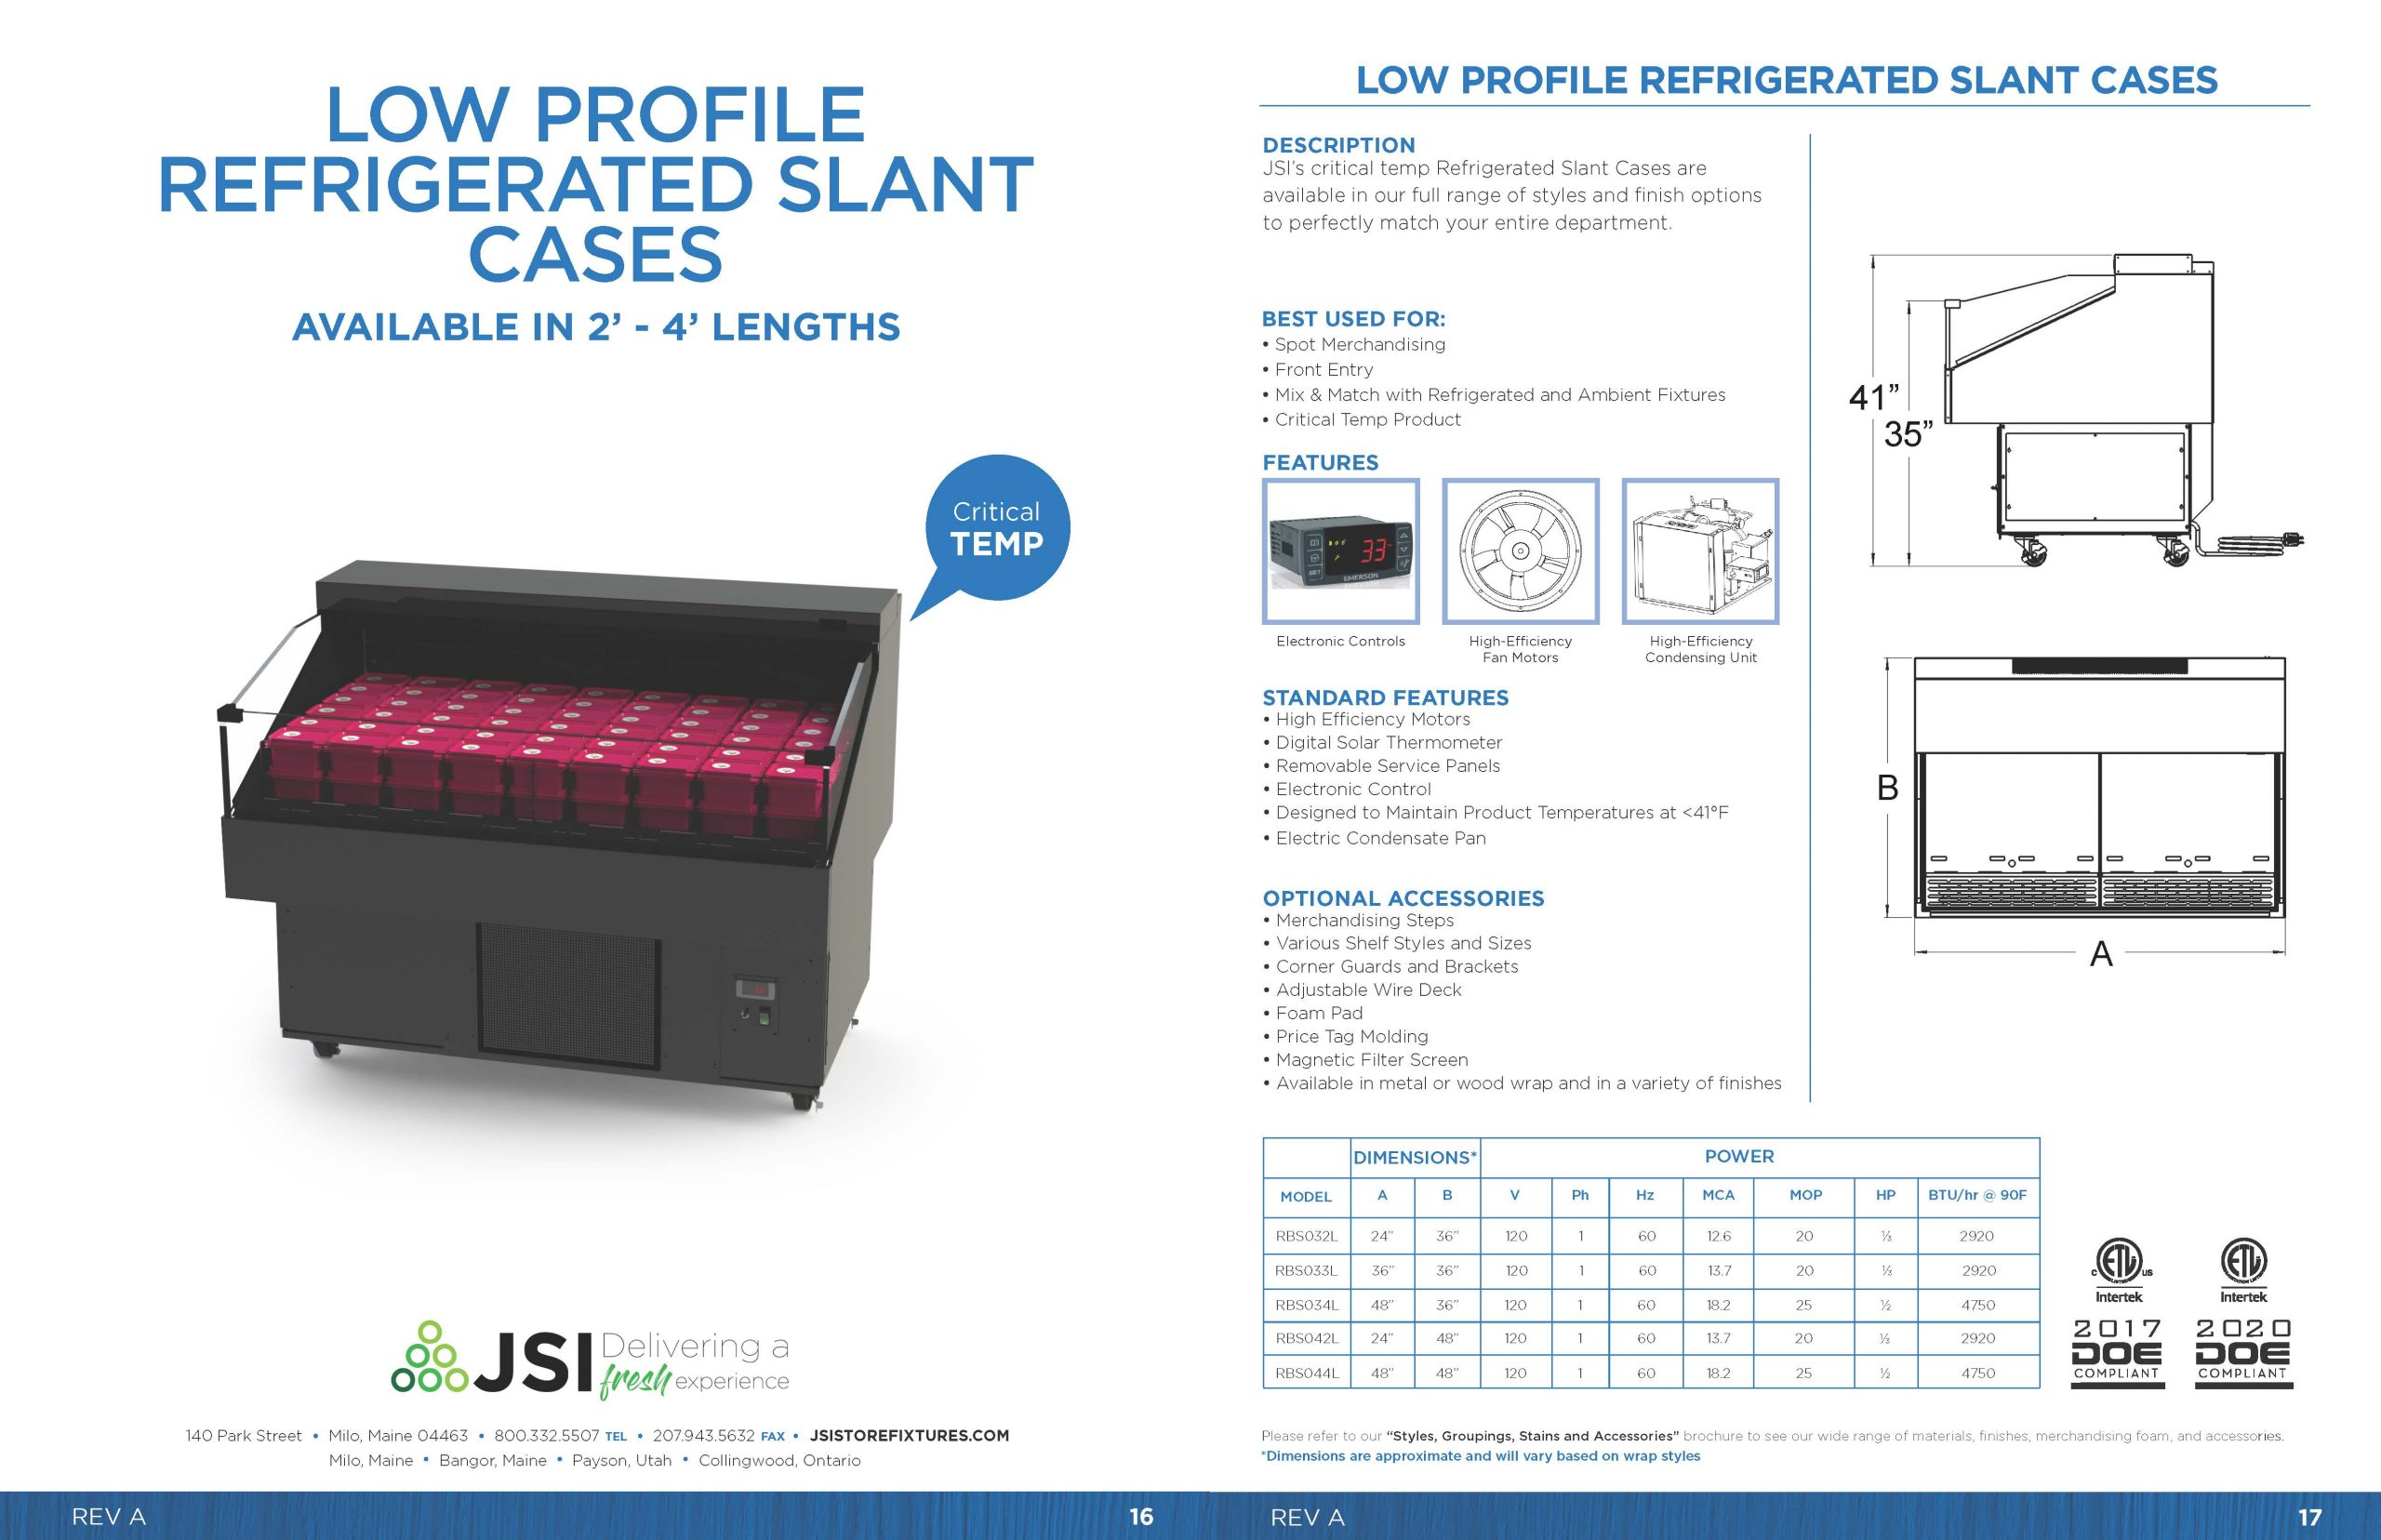 Low Profile Refrigerated Slant Cases